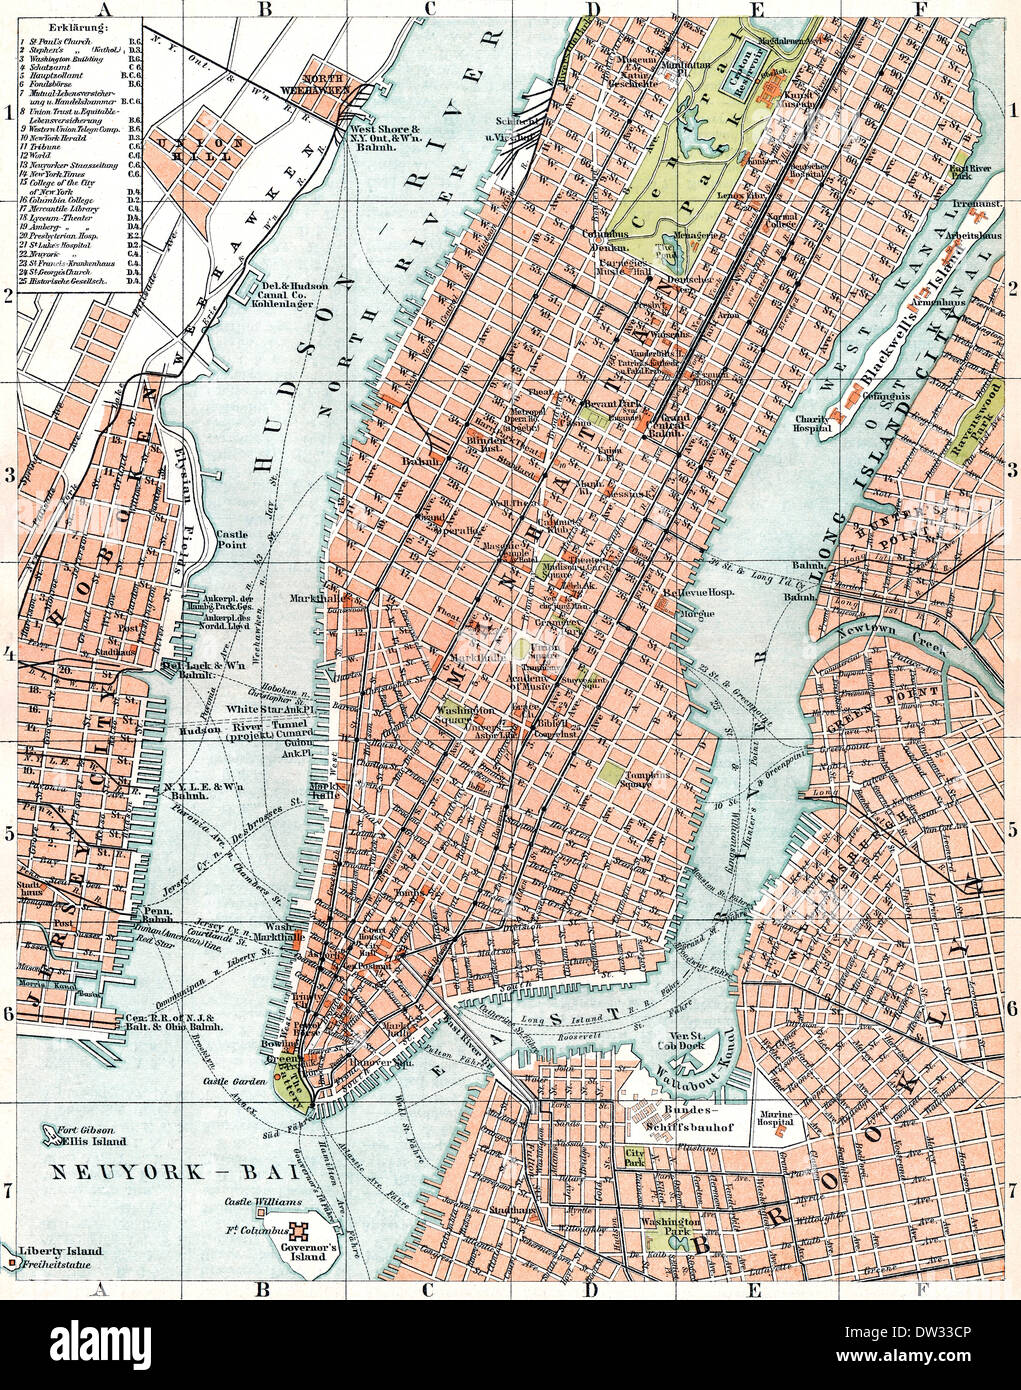 New York On Usa Map.Historical Map Of New York City Usa 1896 Stock Photo 67066070 Alamy